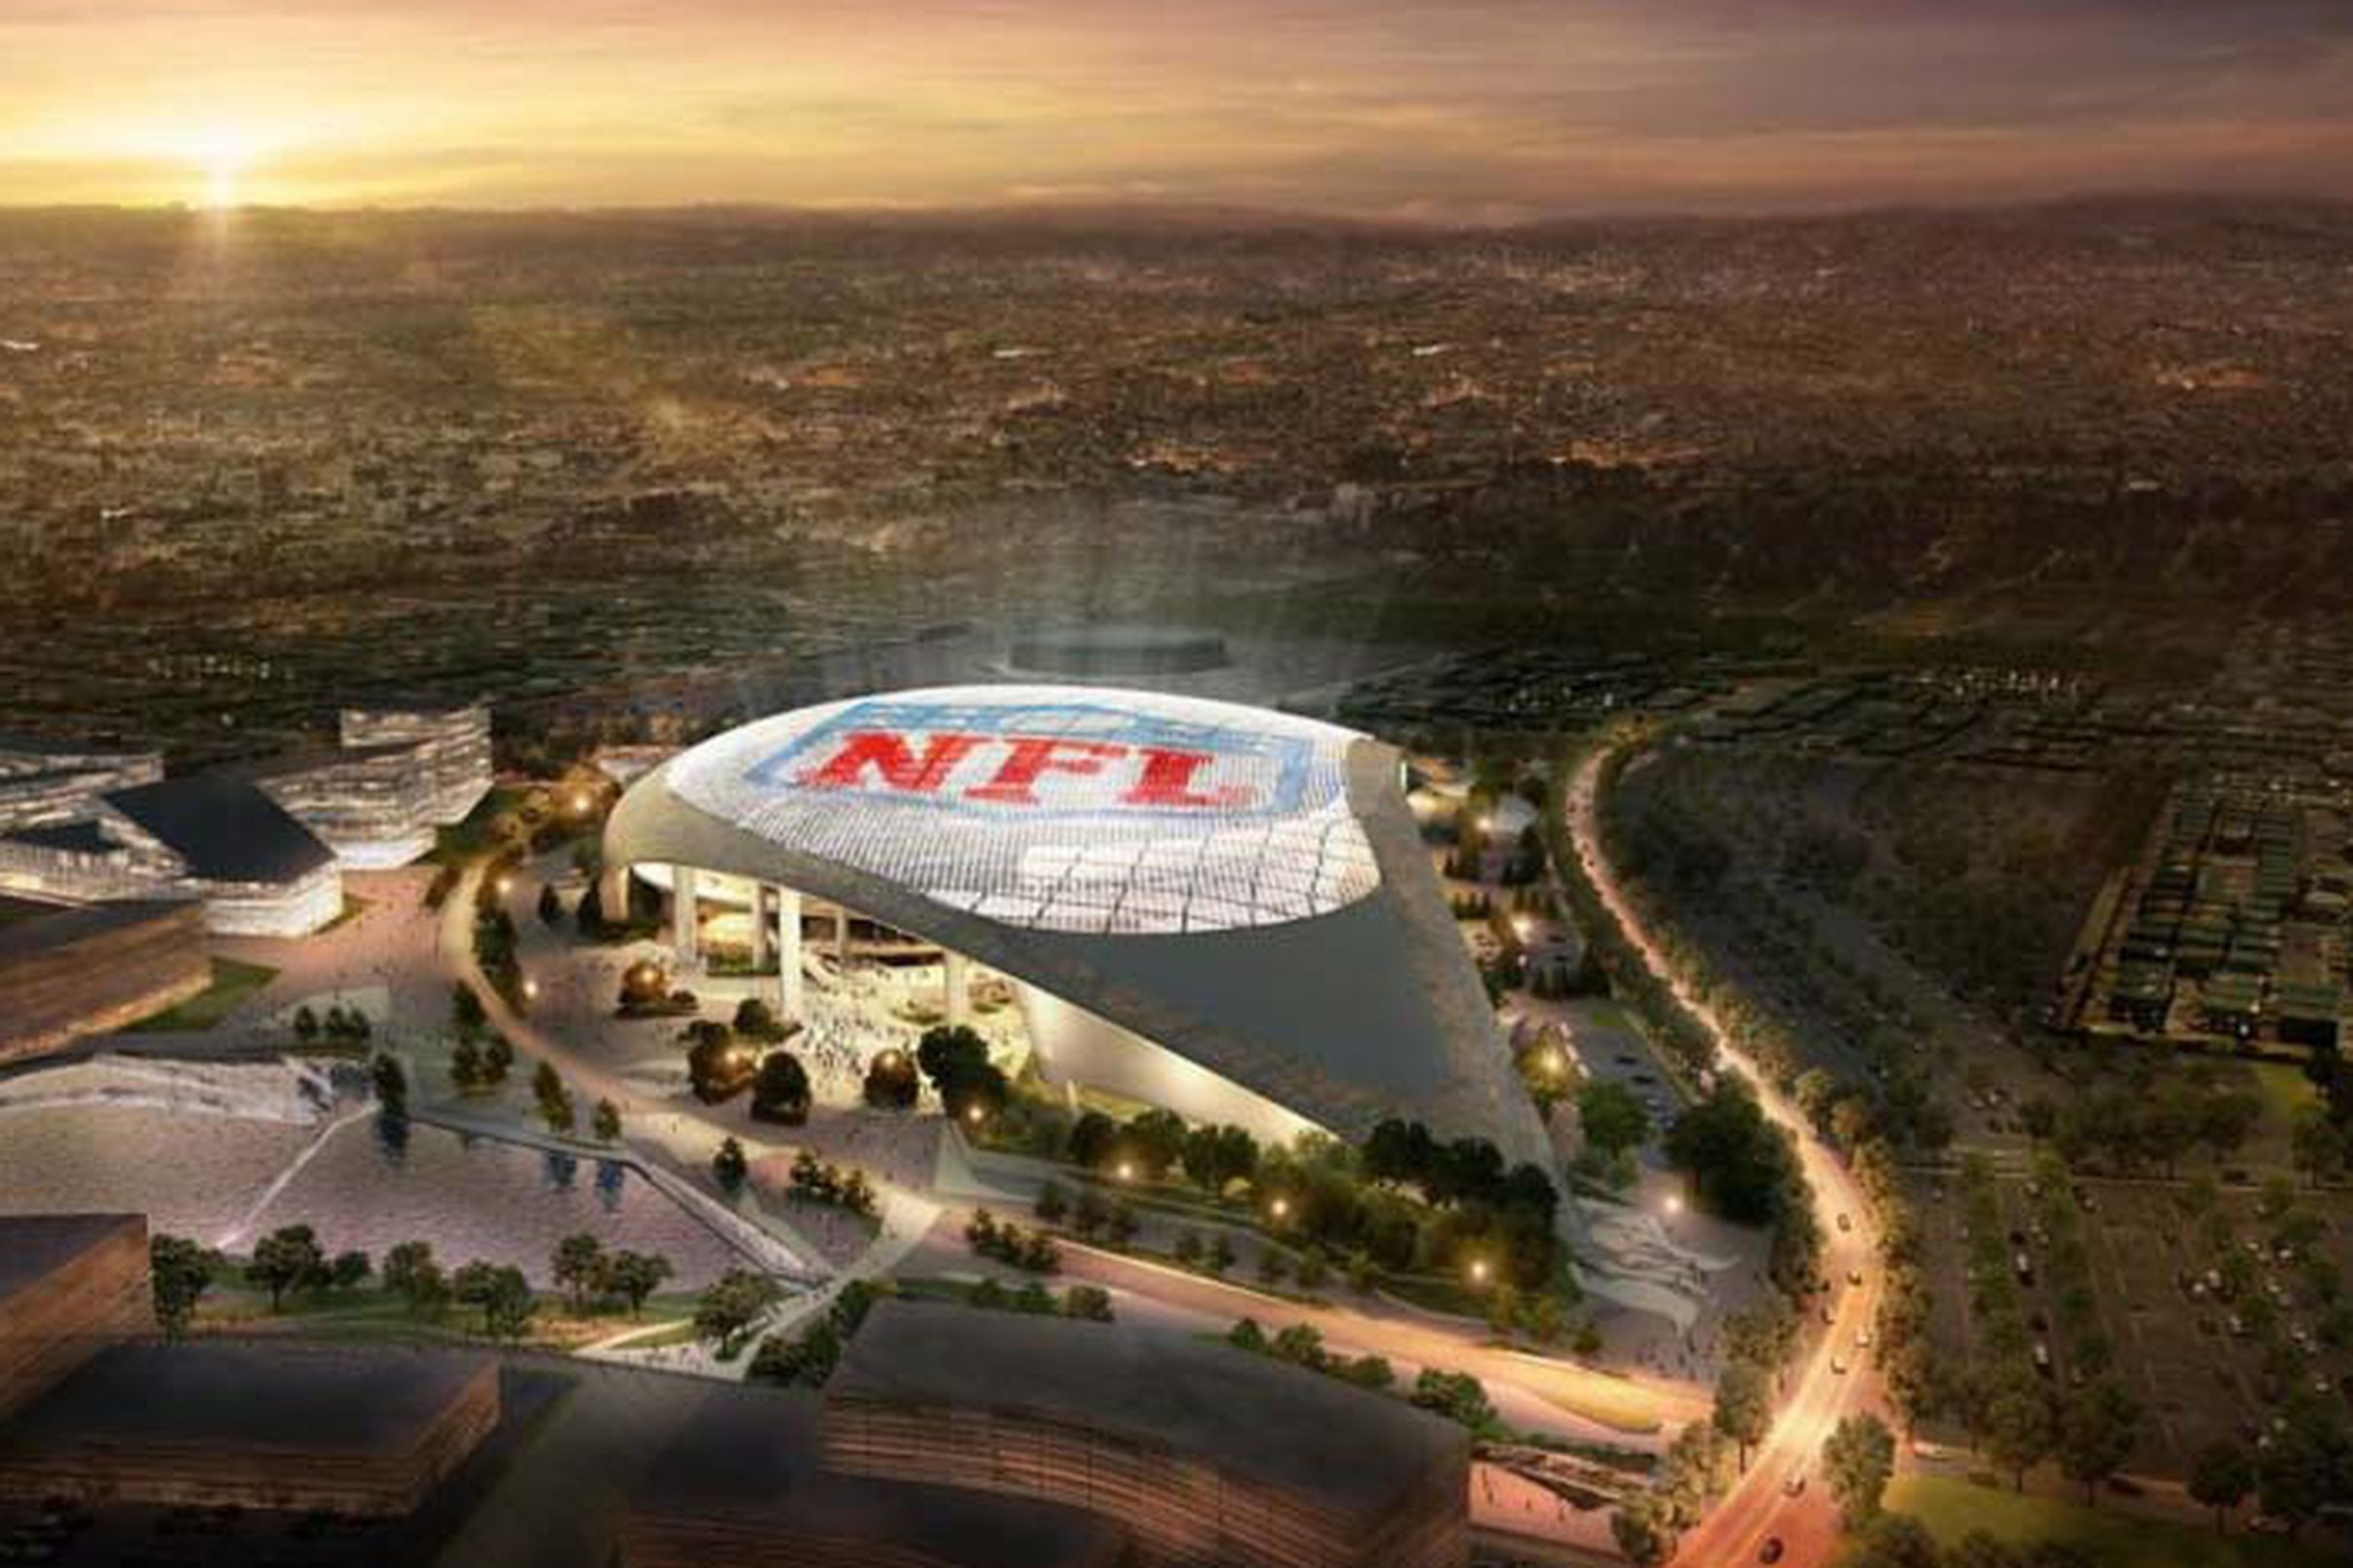 The Future La Rams Stadium Is Already Driving A Real Estate Feeding Frenzy In Inglewood Nfl Stadiums Los Angeles Rams New Football Stadiums